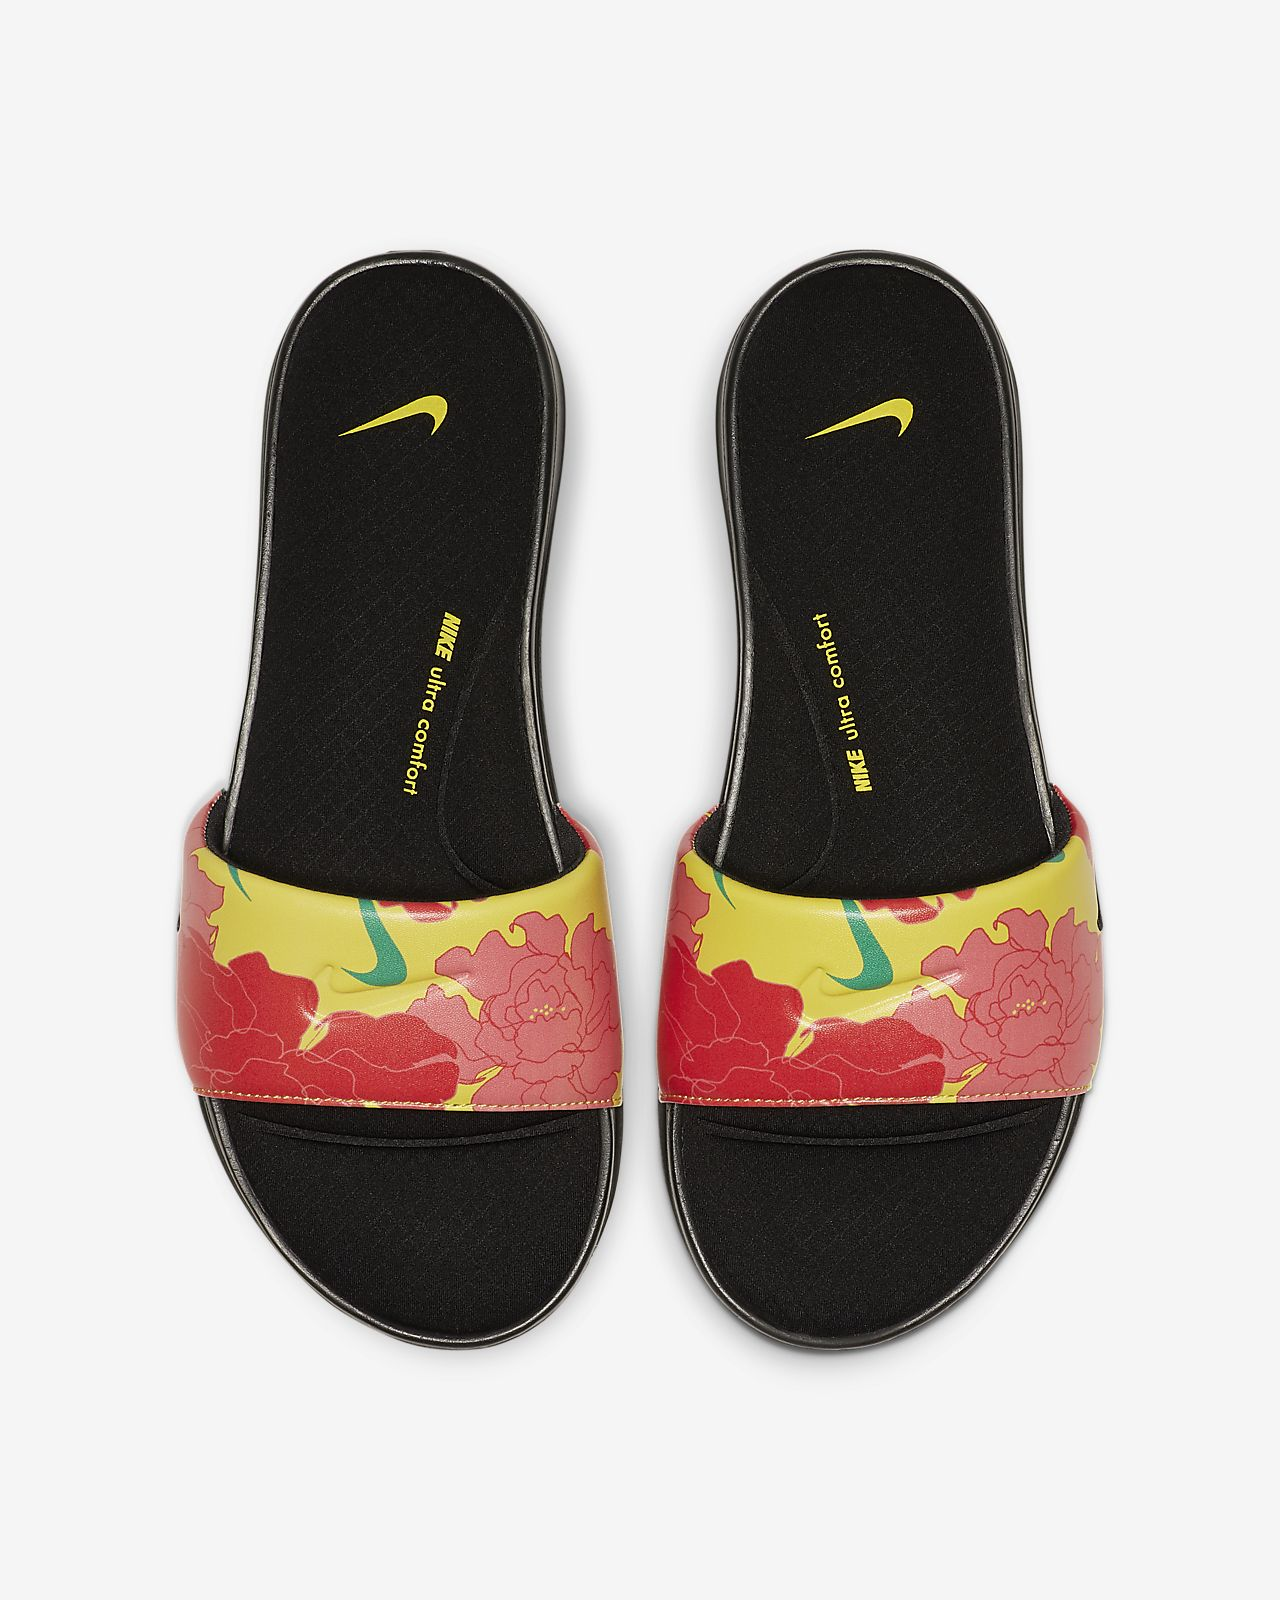 Nike Ultra Comfort 3 Printed Women's Slide